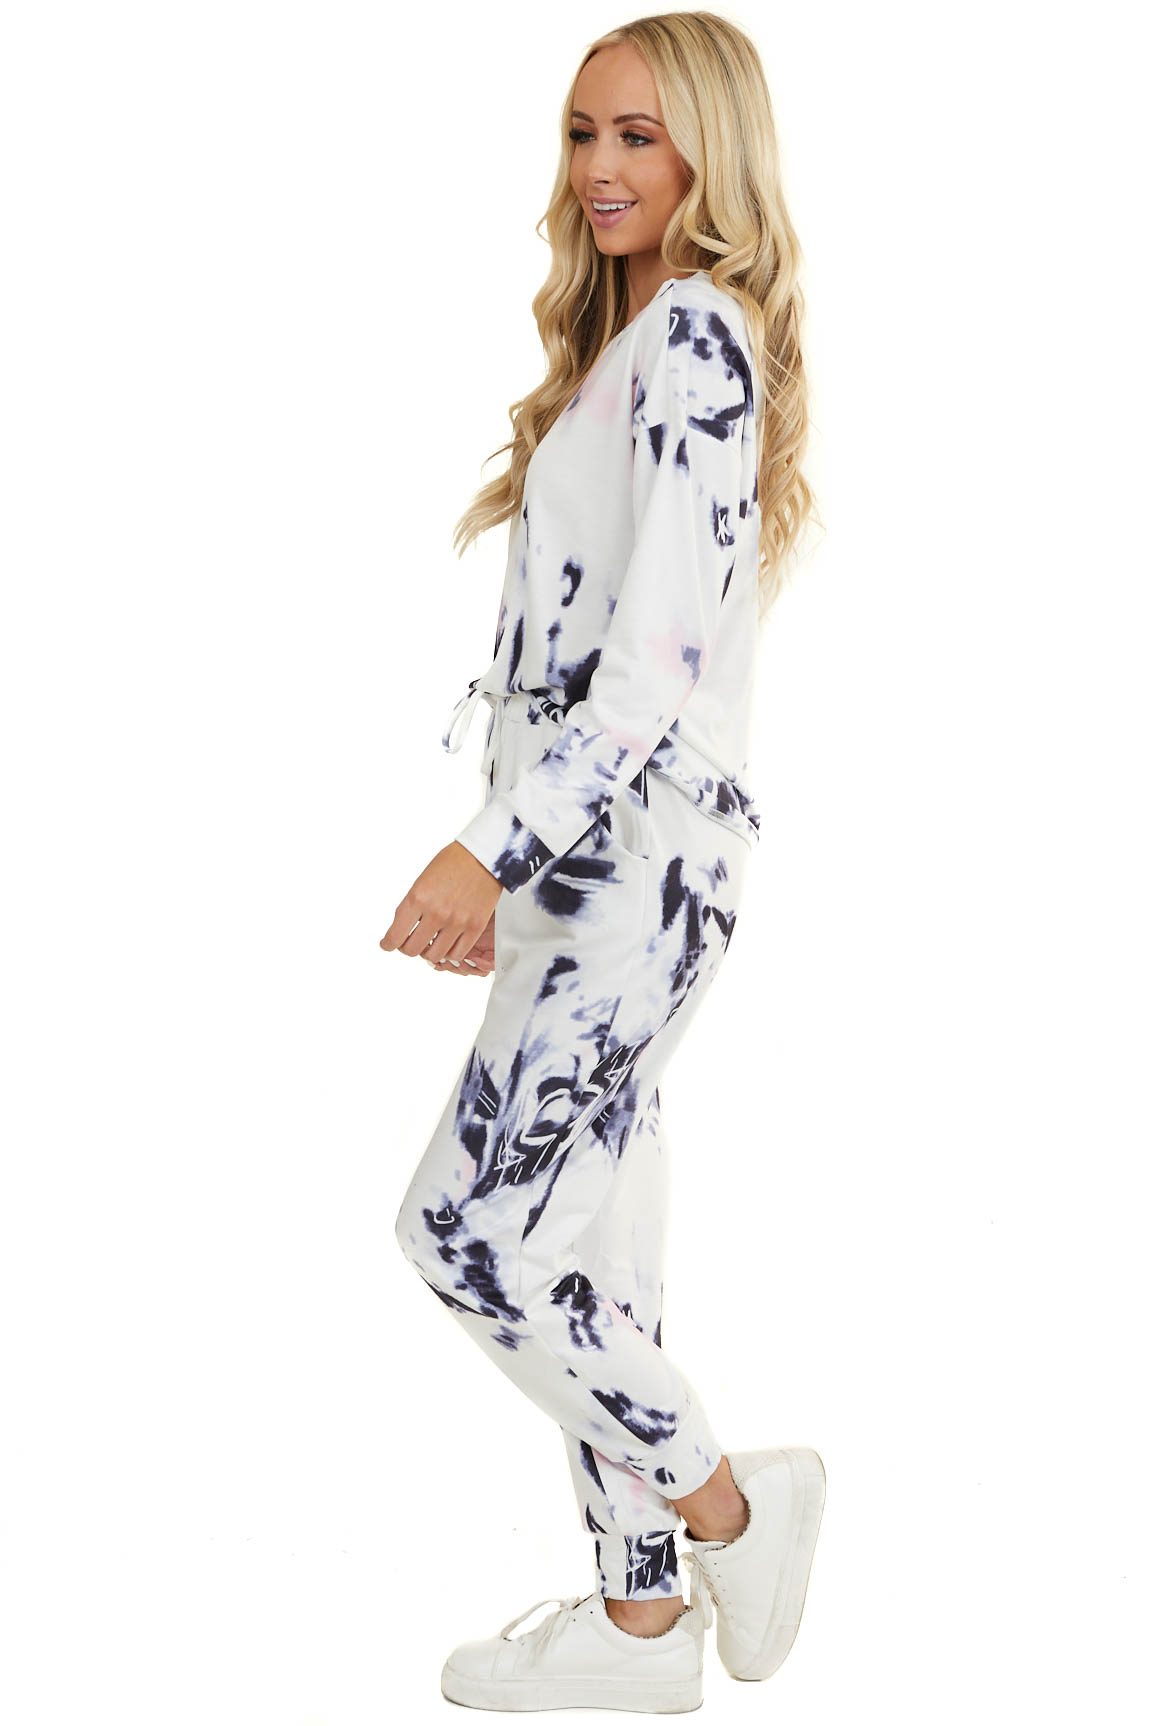 Periwinkle and Baby Pink Tie Dye Long Sleeve and Joggers Set